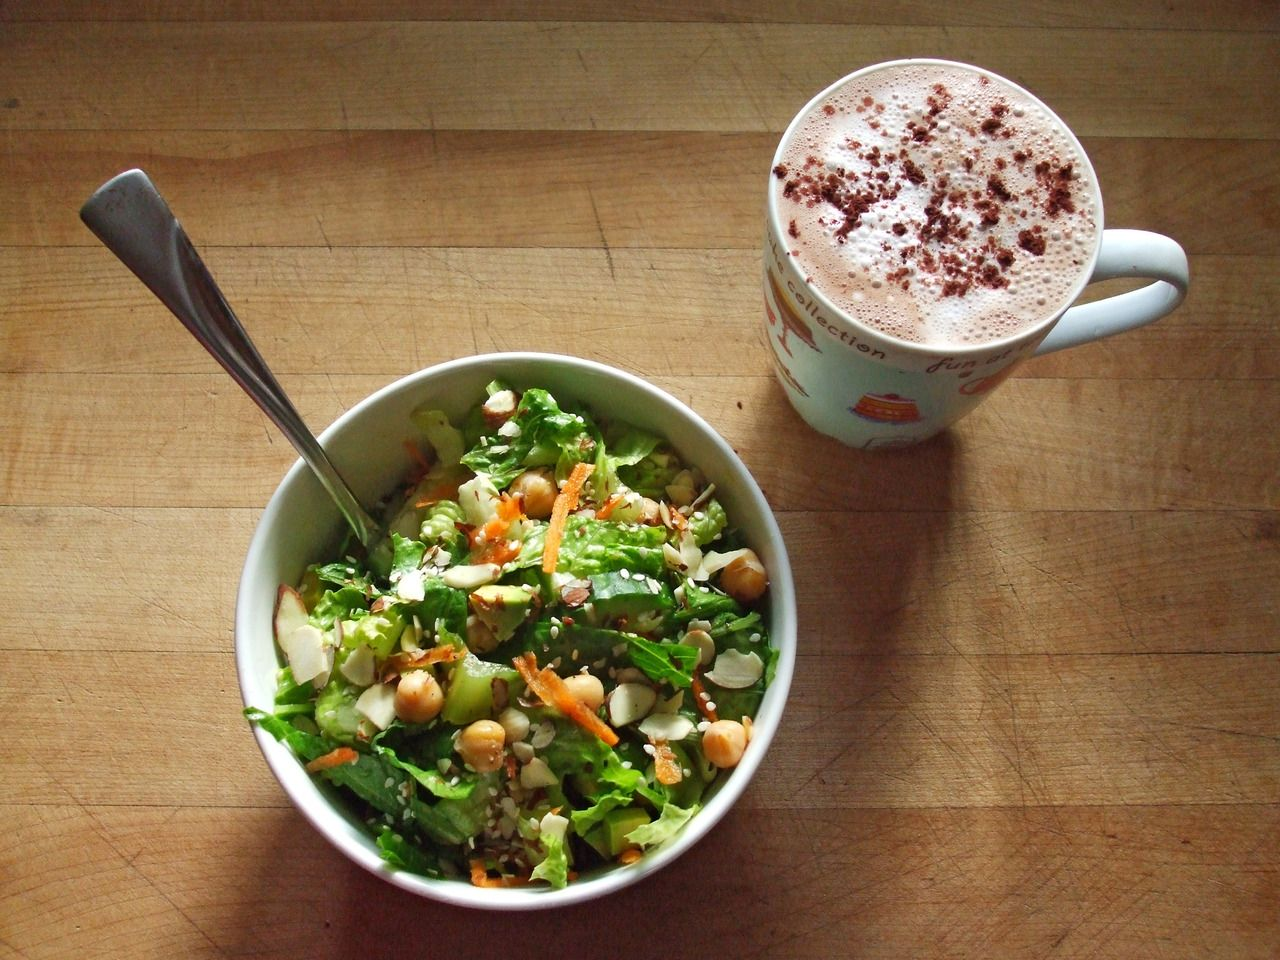 green salad with romaine, cucumber, carrot, avocado, chickpeas, sesame seeds, almonds, and oil & vinegar dressing, and a coconut mocha